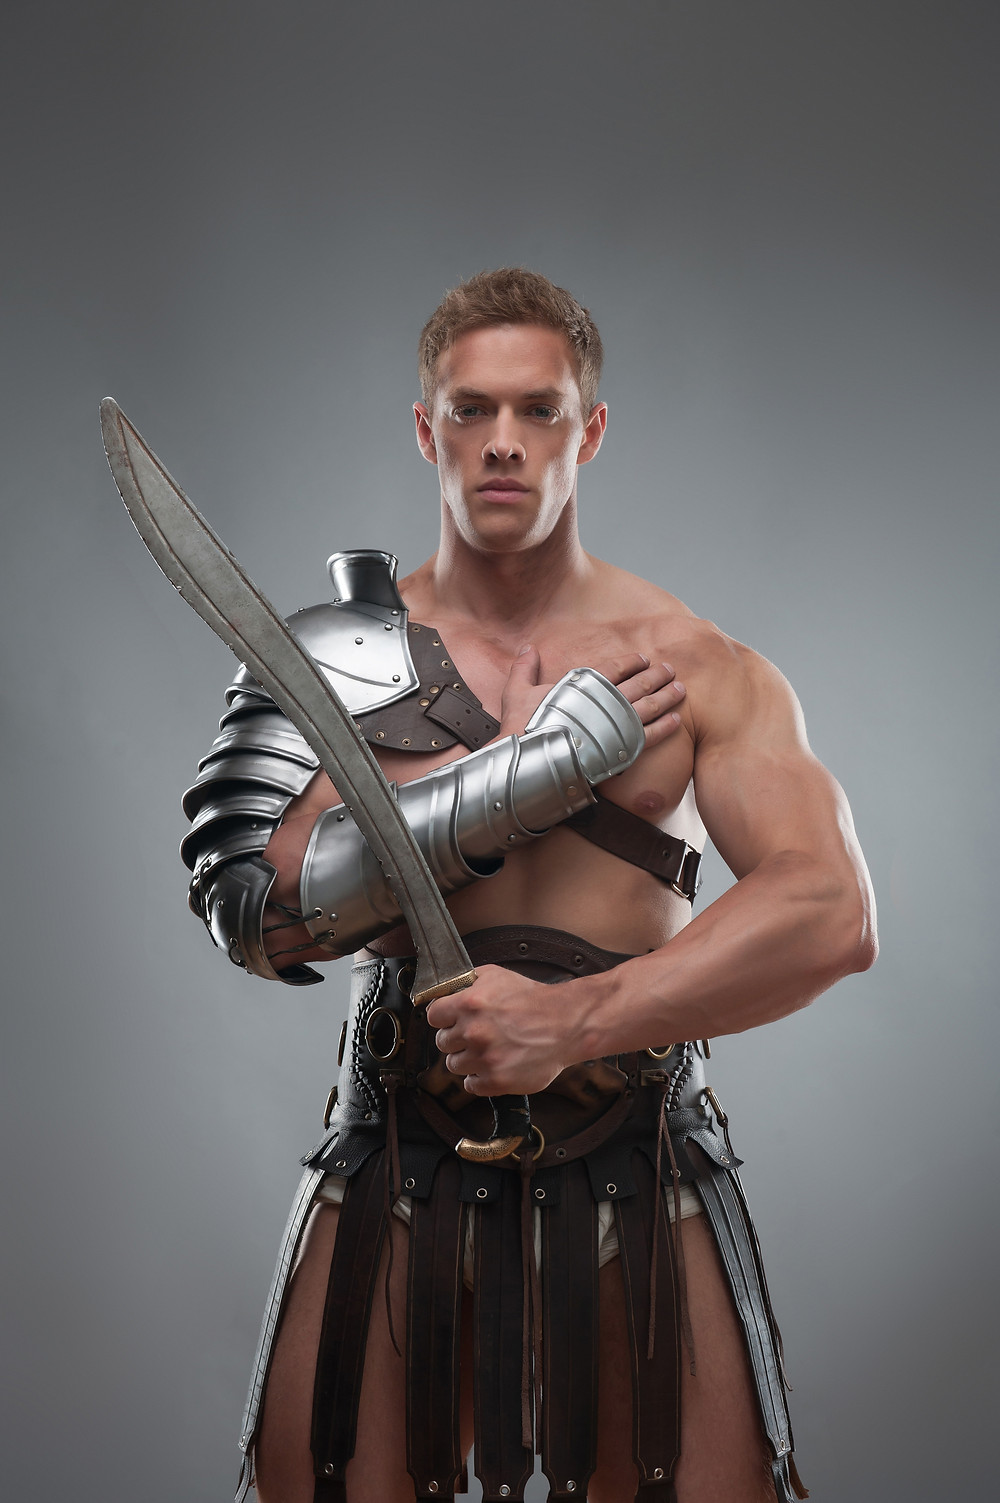 Gladiator in armour posing with sword over grey background.jpg